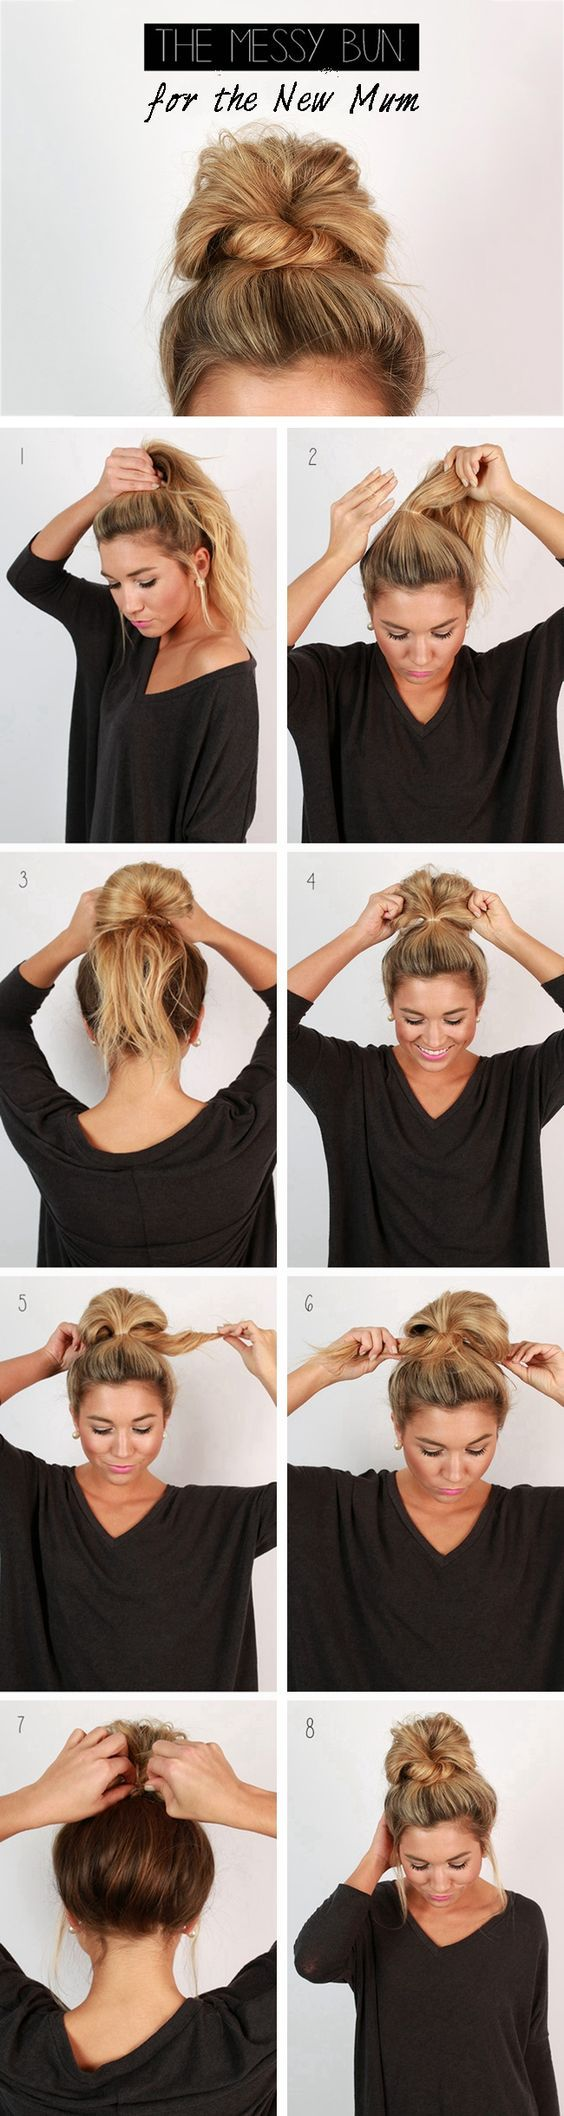 Messy hair donut care hairstyles pinterest th forget and gym